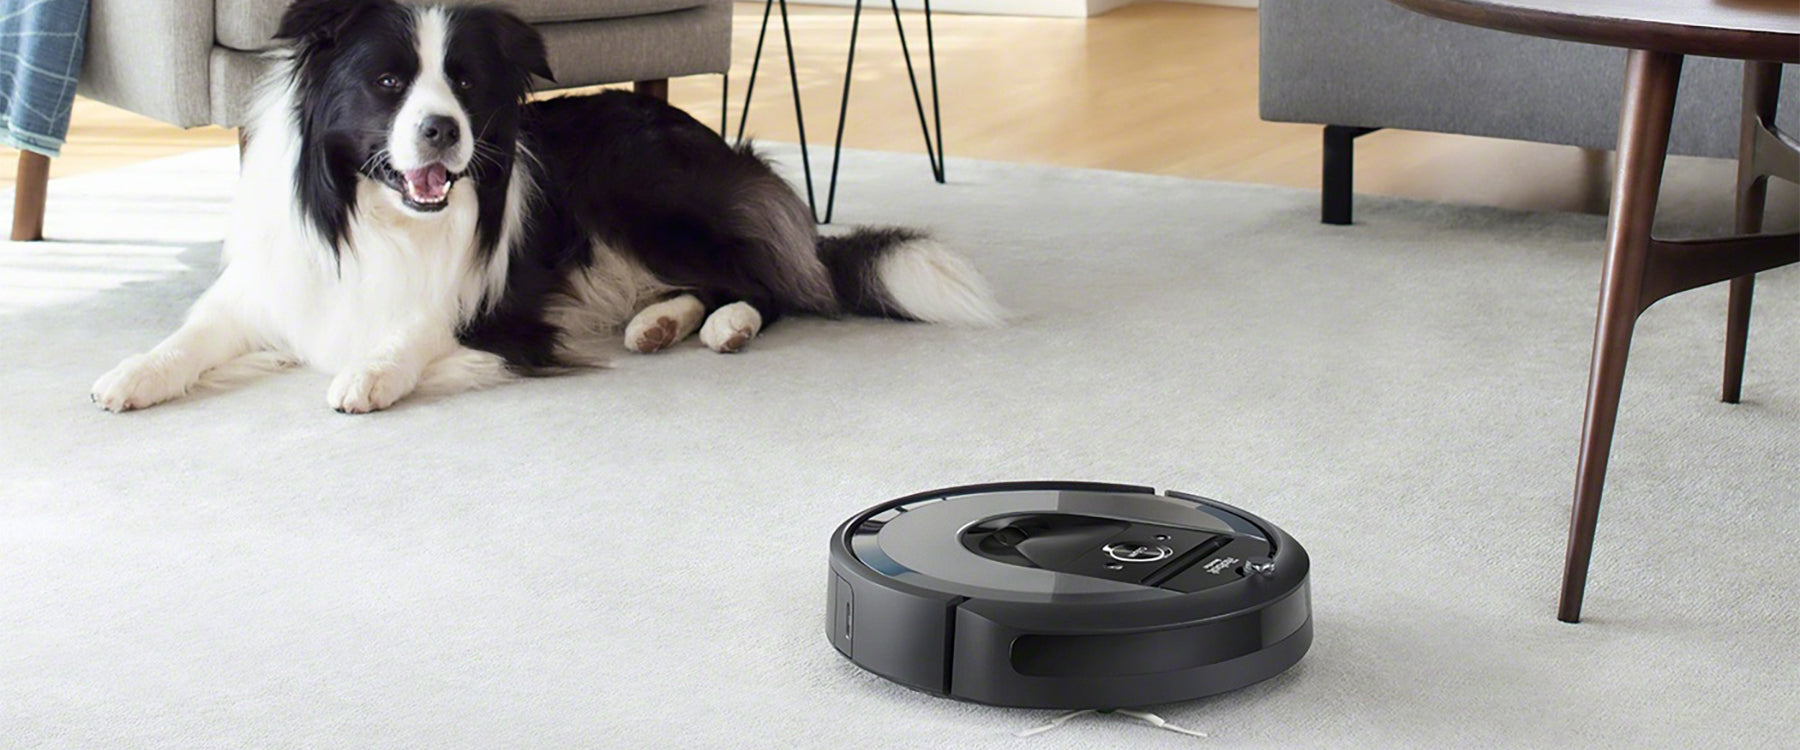 5 Out of the Top 6 Selling Robot Vacuums You've Never  Heard Of.